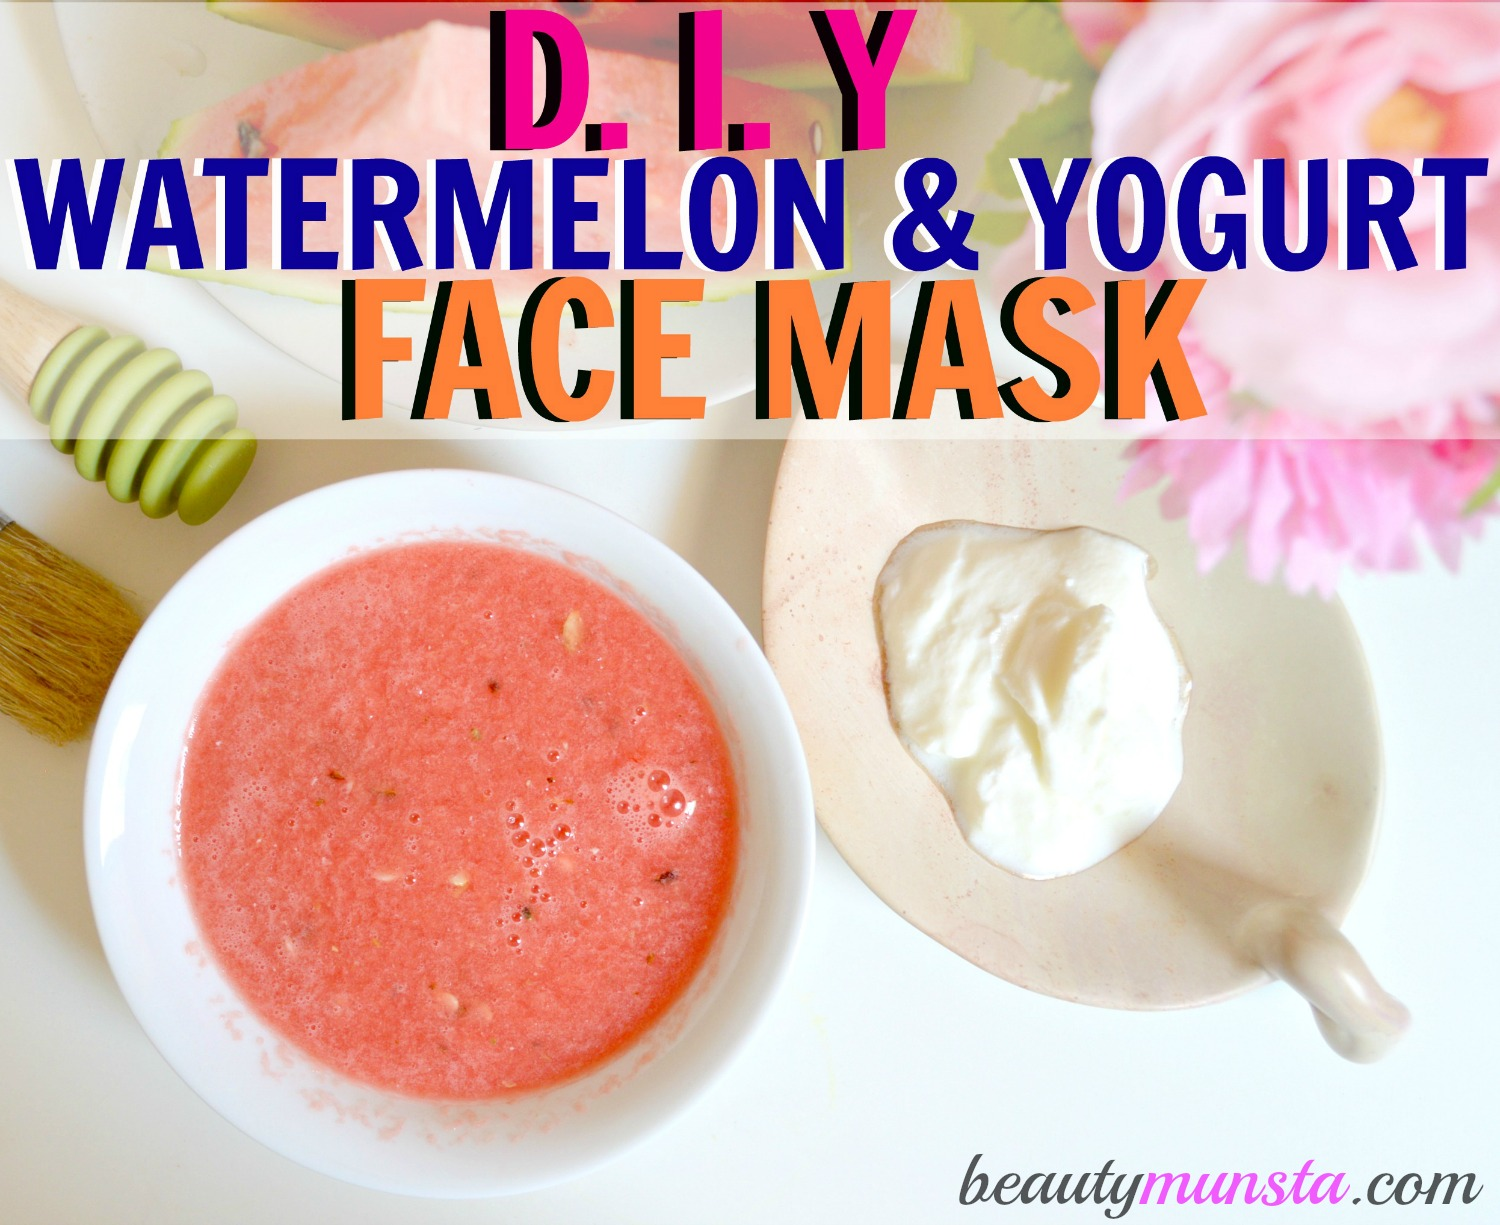 Combine watermelon & yogurt to get a cooling face mask for acne-free skin!